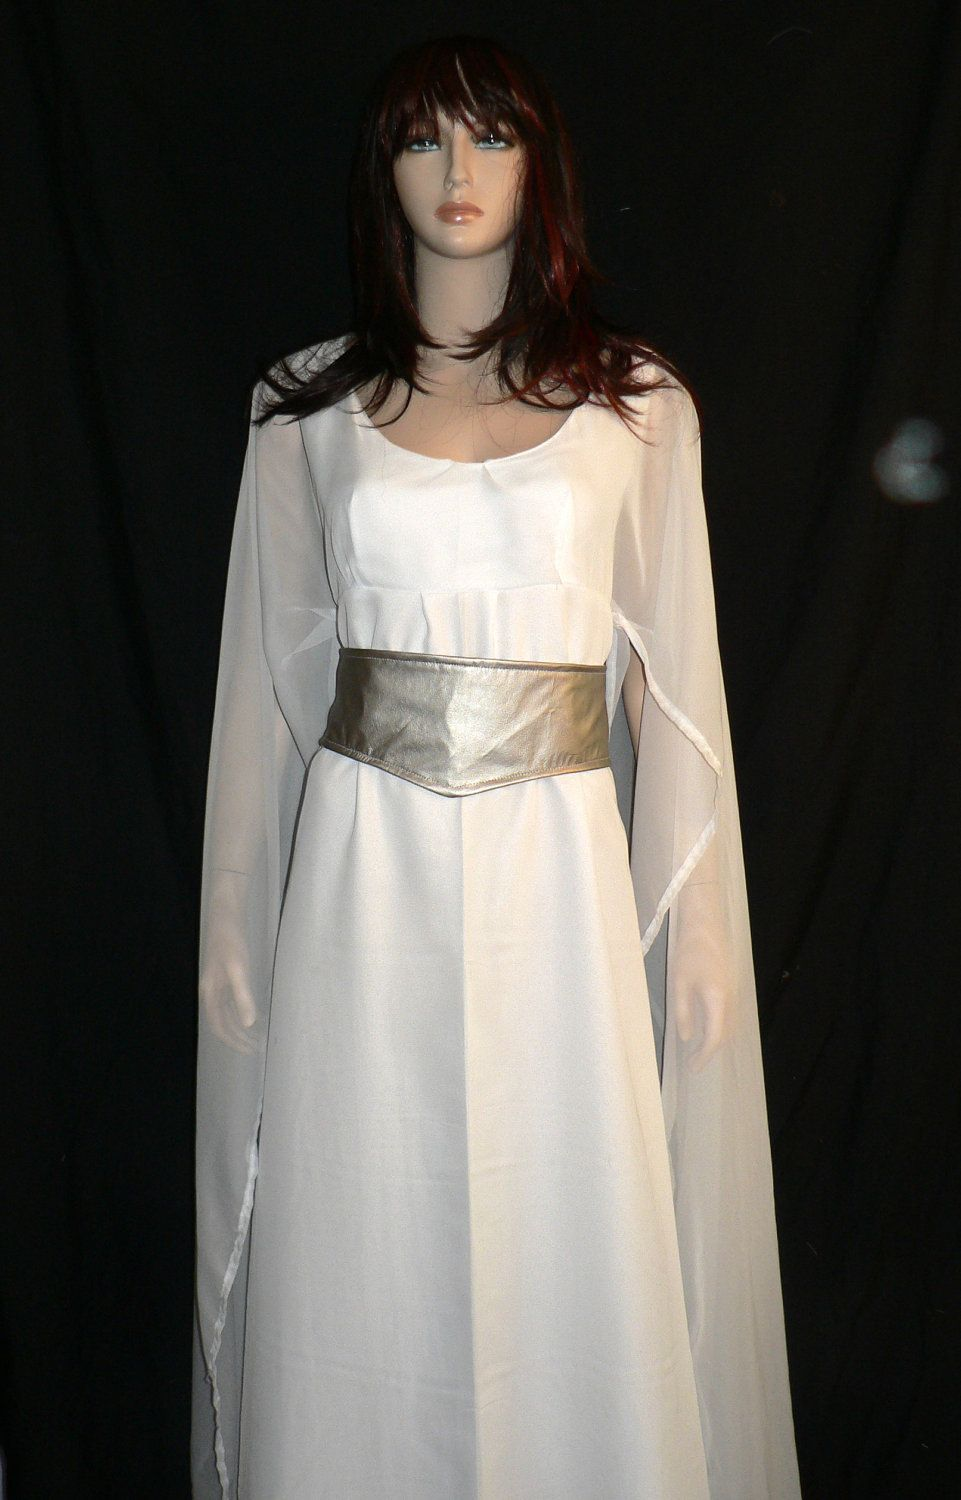 Star Wars Princess Leia Ceremonial Gown Costume, Star Wars Cosplay ...